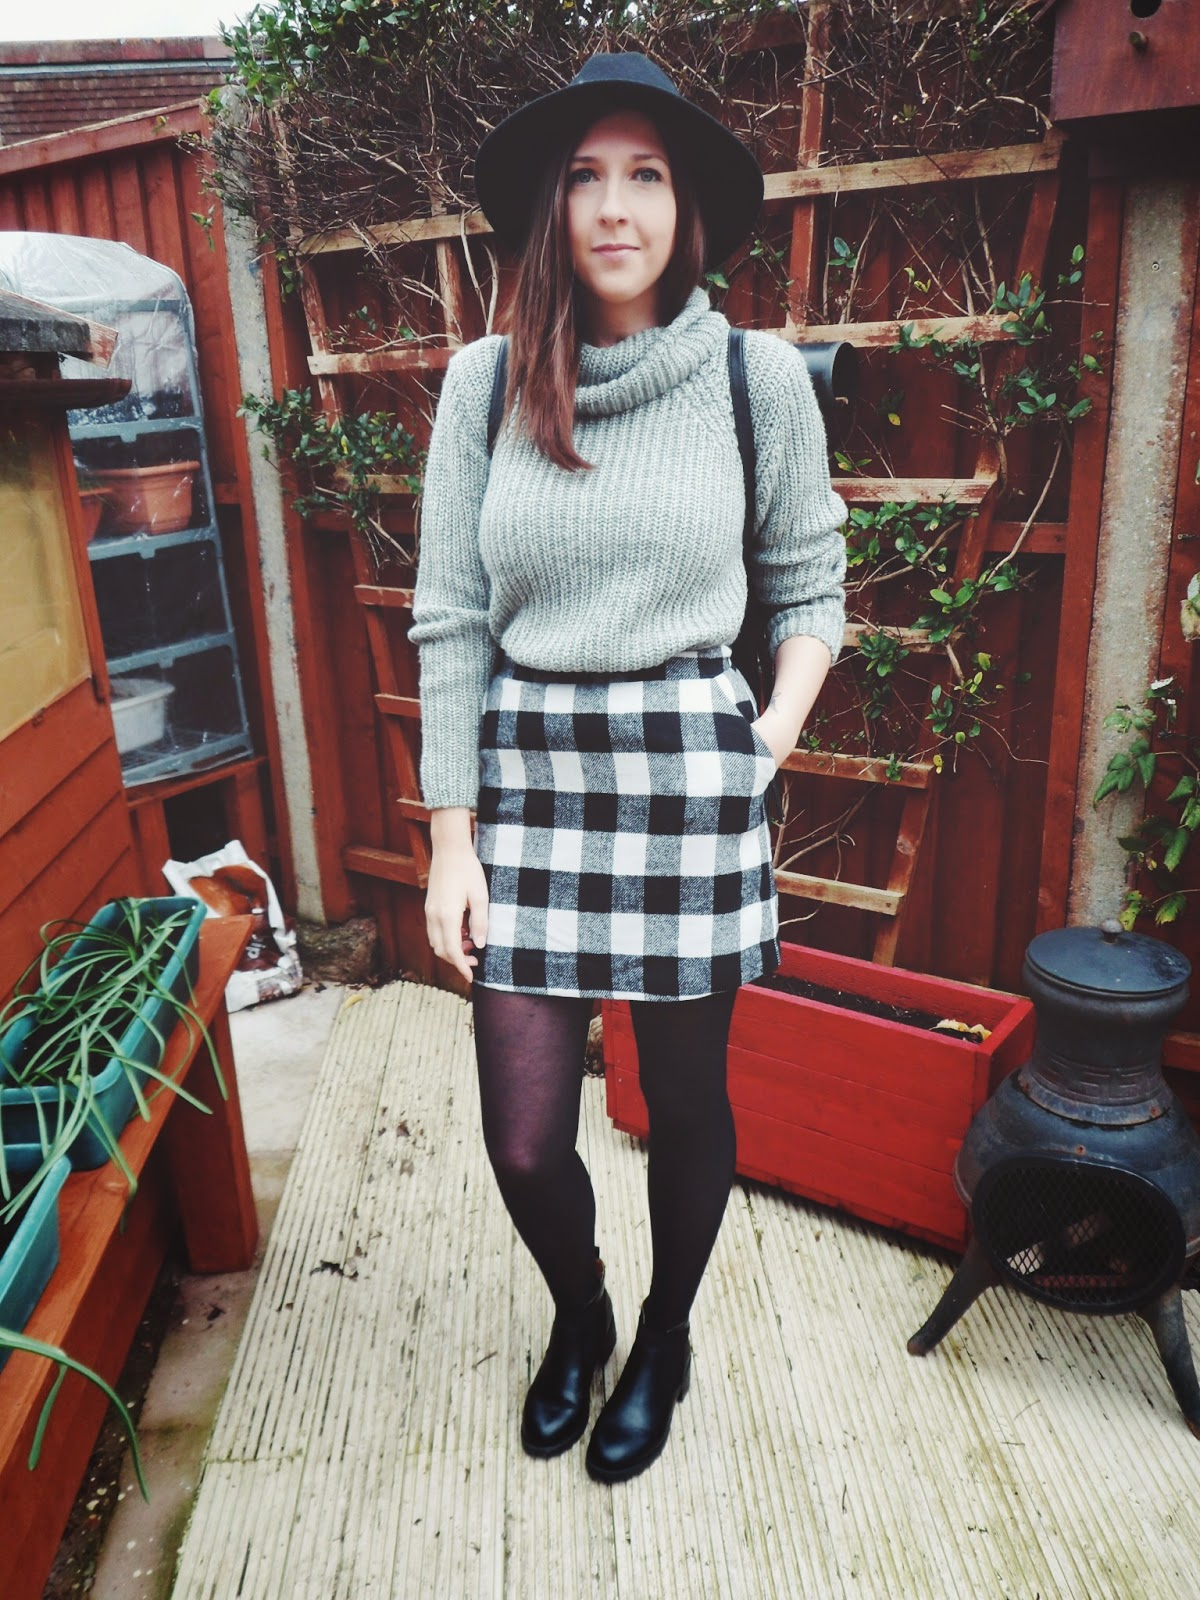 fbloggers, fashionbloggers, fblogger, fashion, win, whatimwearing, whatibought, asseenonme, matalan, primark, newlook, blackandwhite, alineskirt, rollneckjumper, fedora, lotd, lookoftheday, ootd, outfitoftheday